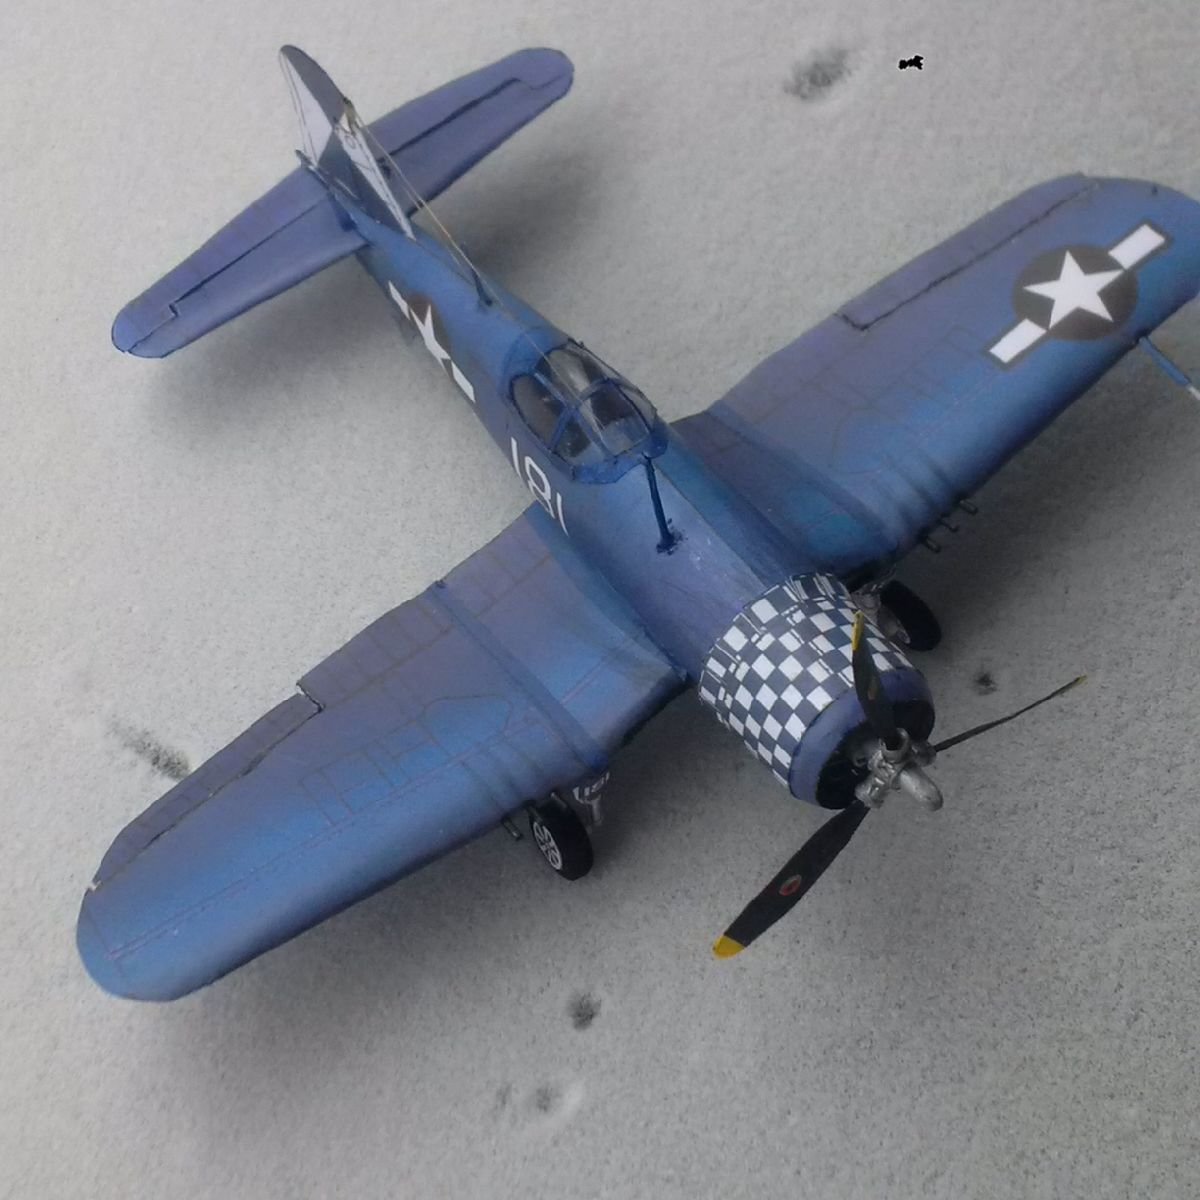 Vought's F4U Corsair model